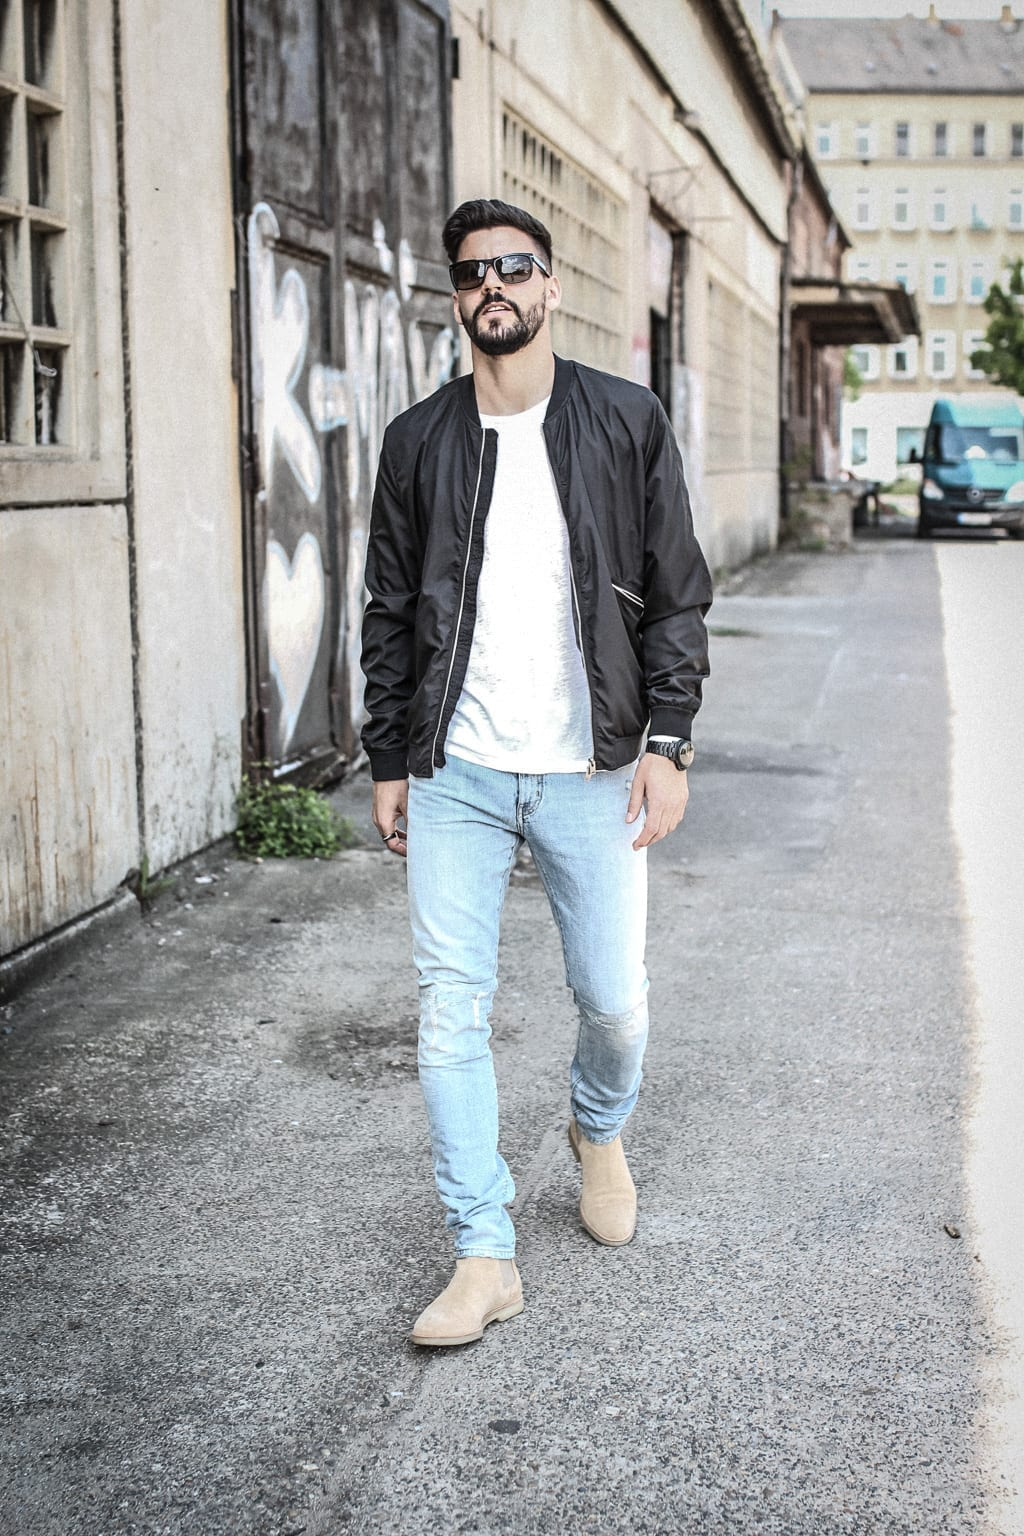 CK1603_Constantly-K-anthony-tony-jung-fußball-spieler-private-fashion-street-style-7057-2